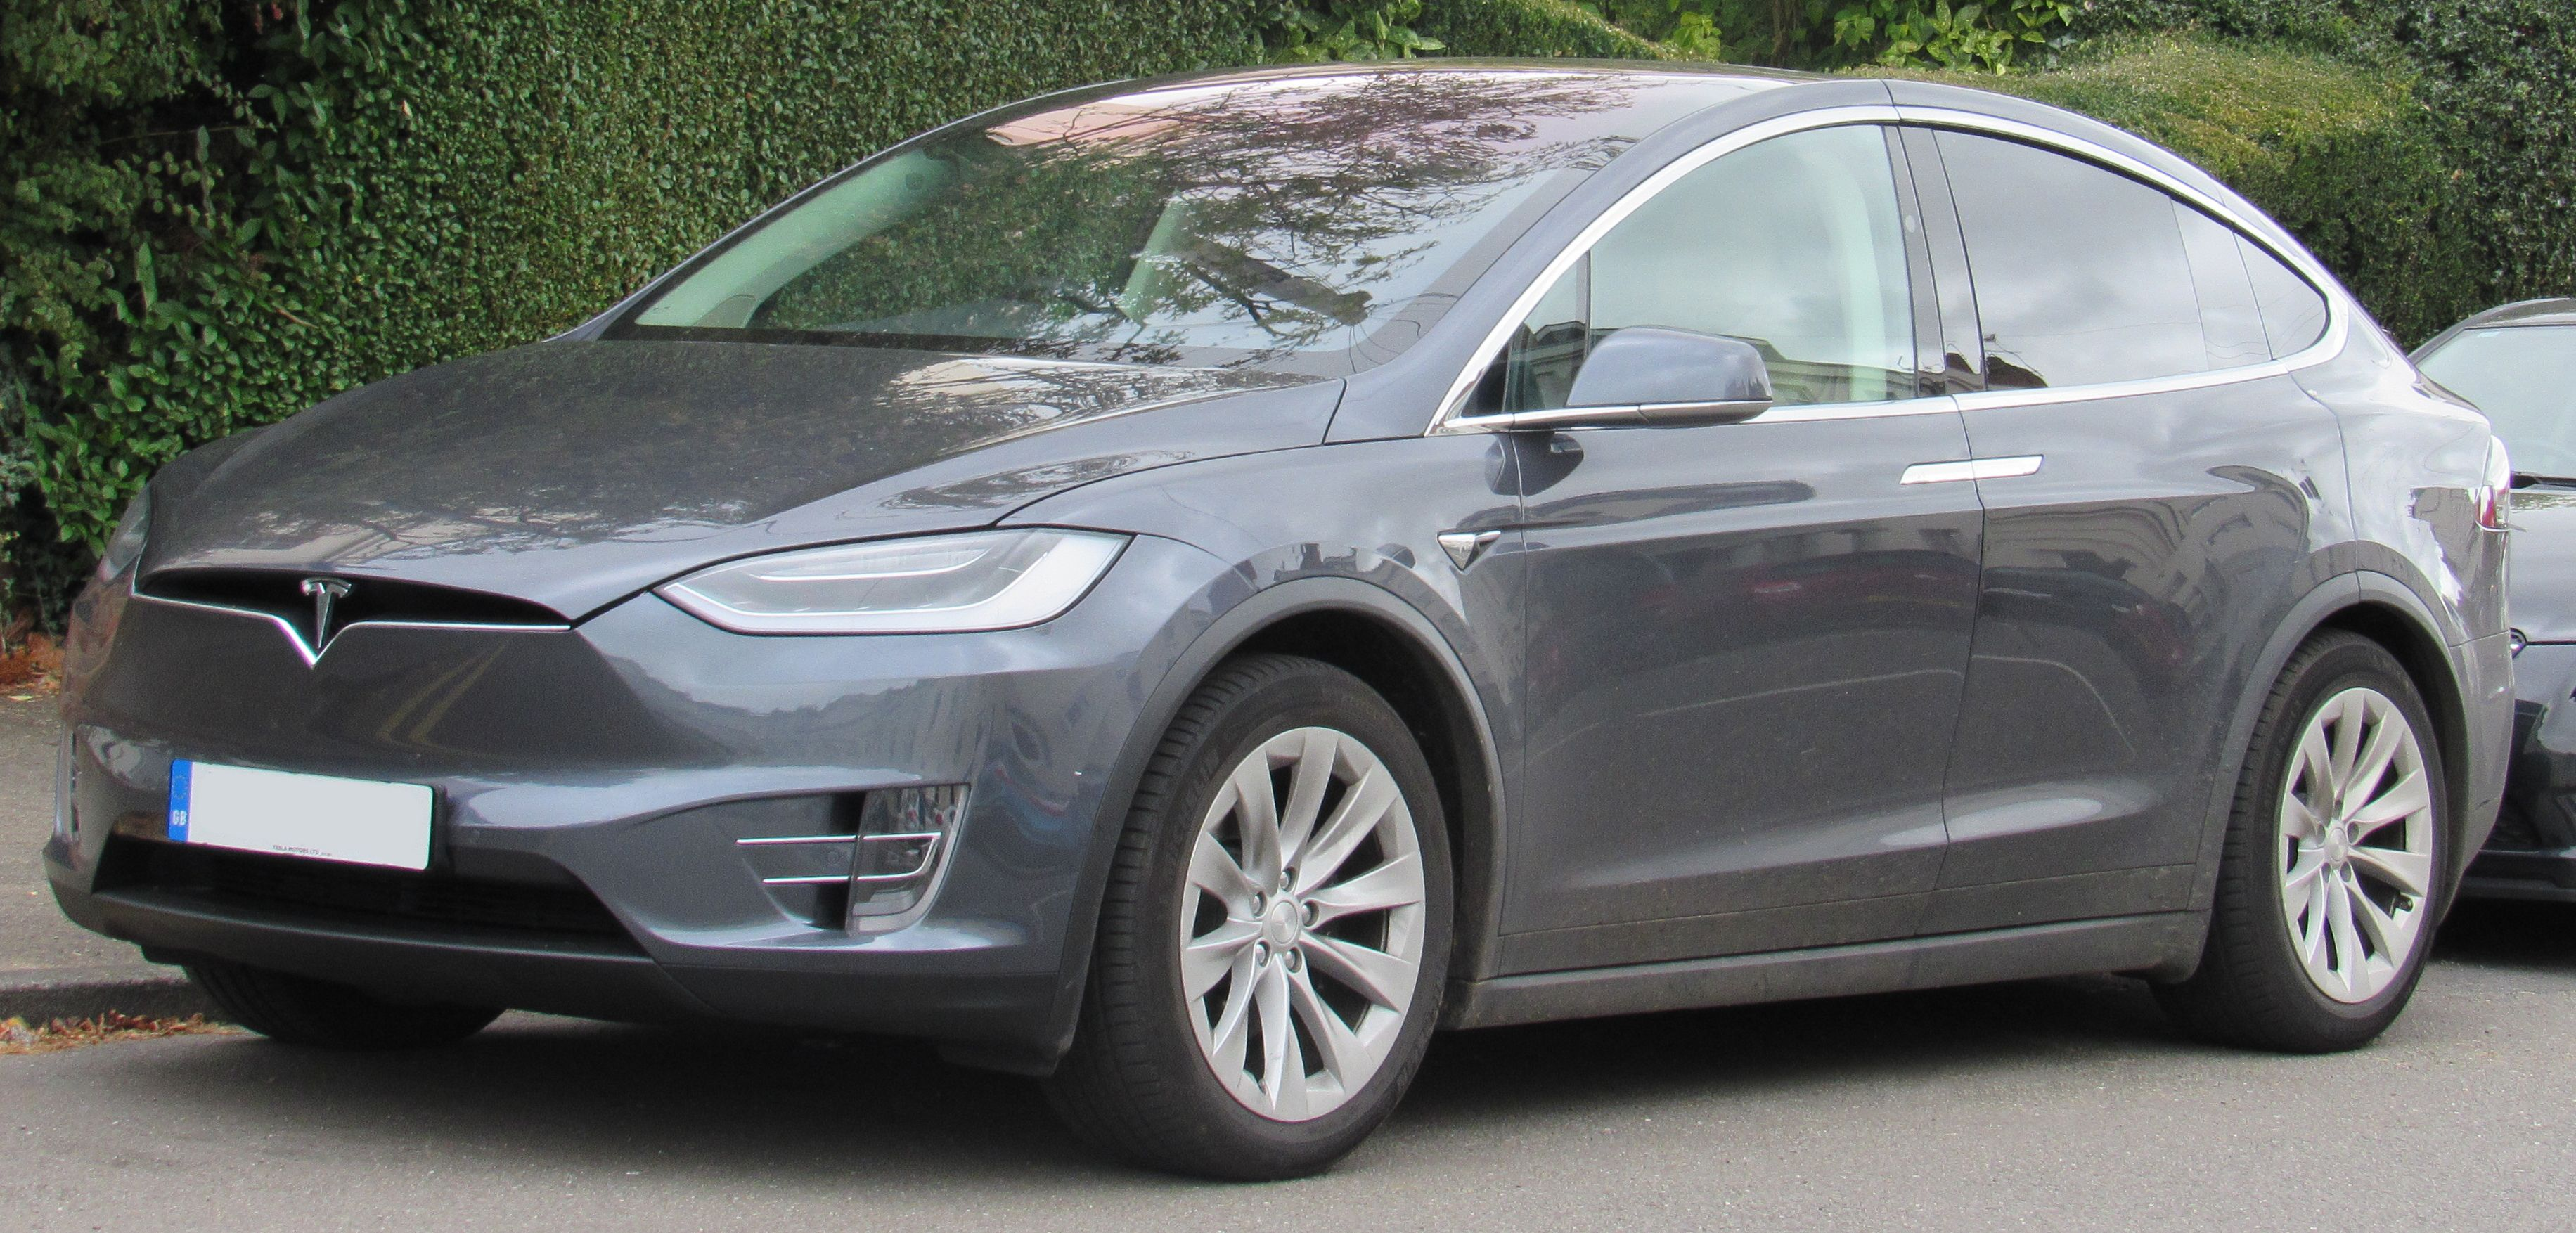 Tesla Model X Wikipedia 55579268 Top Ten Reasons For Choosing